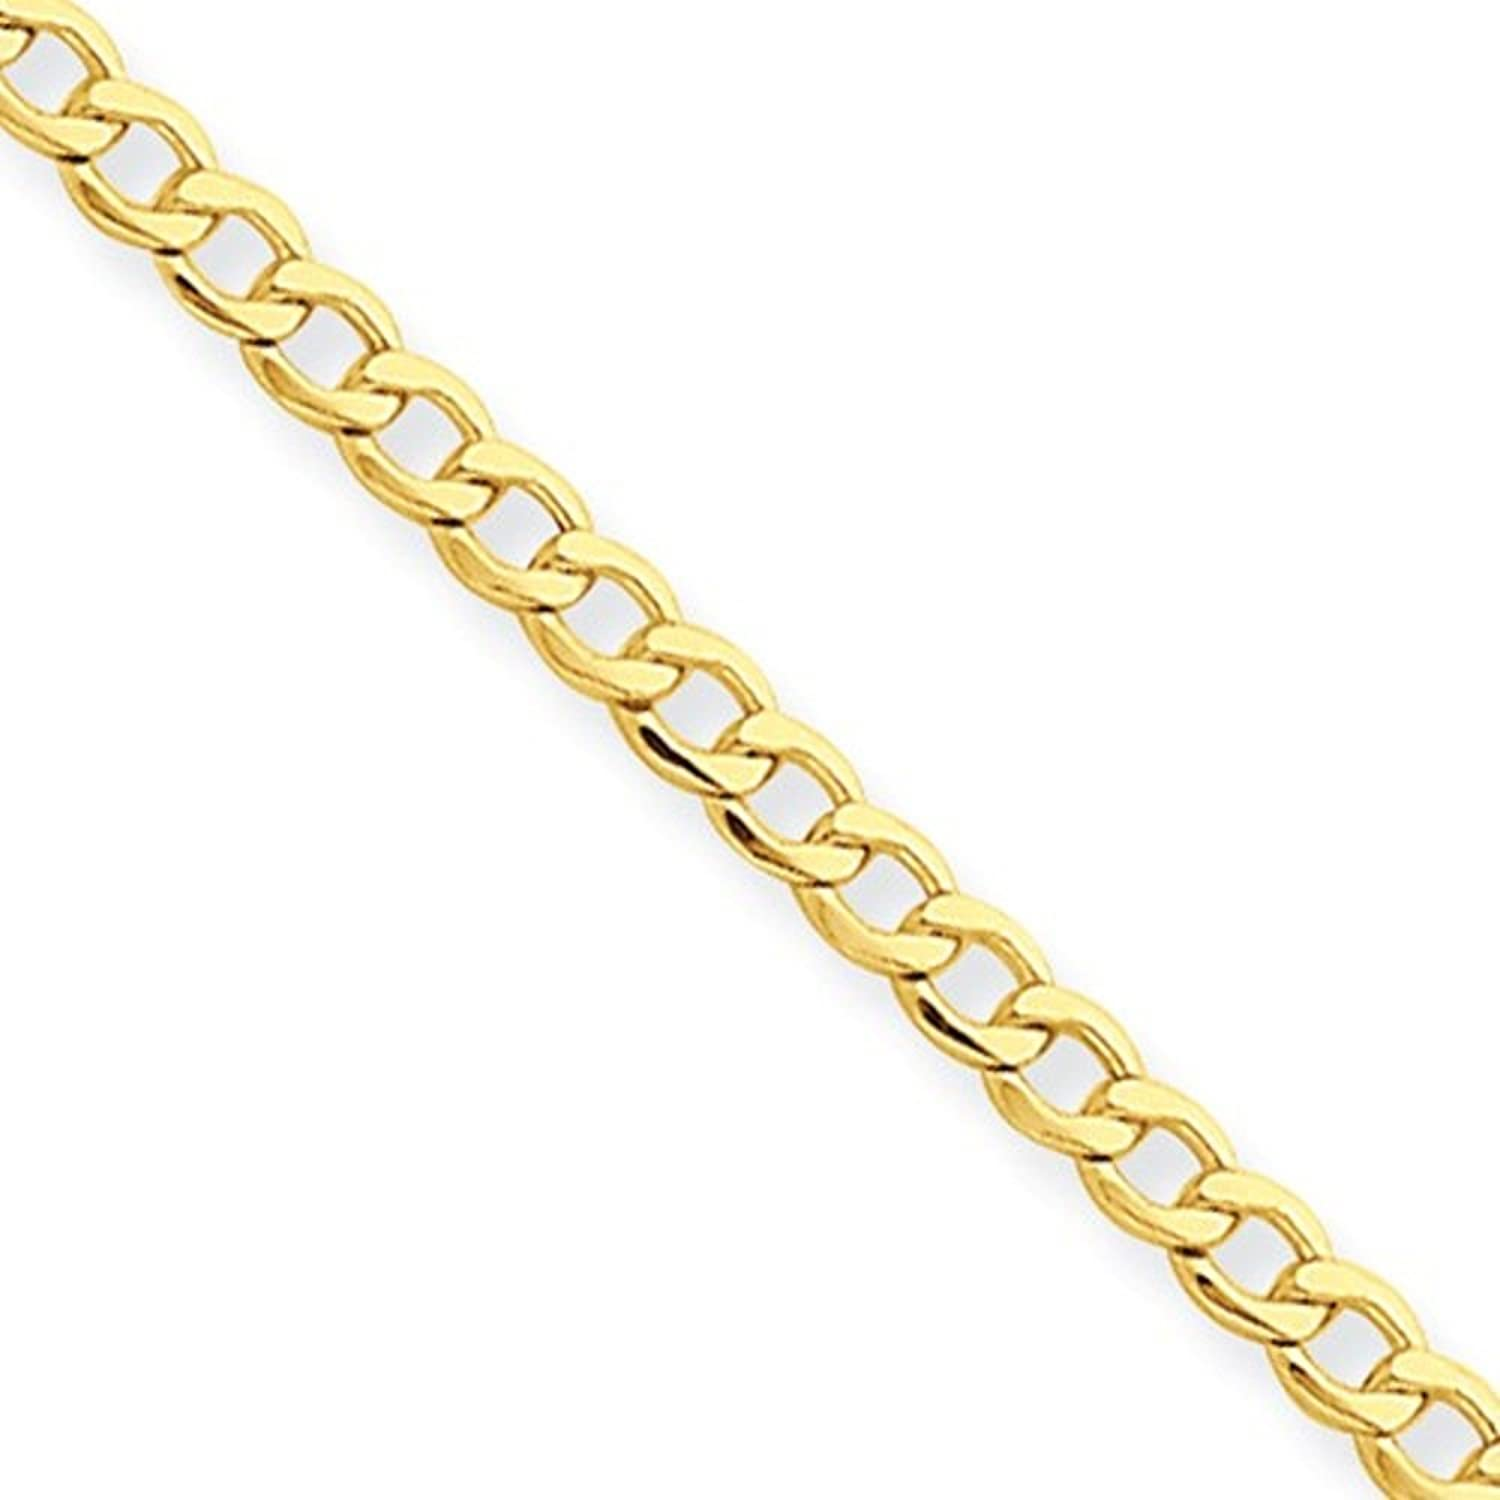 14K Gold 2.50MM Light-Weight Curb Link Anklet Bracelet